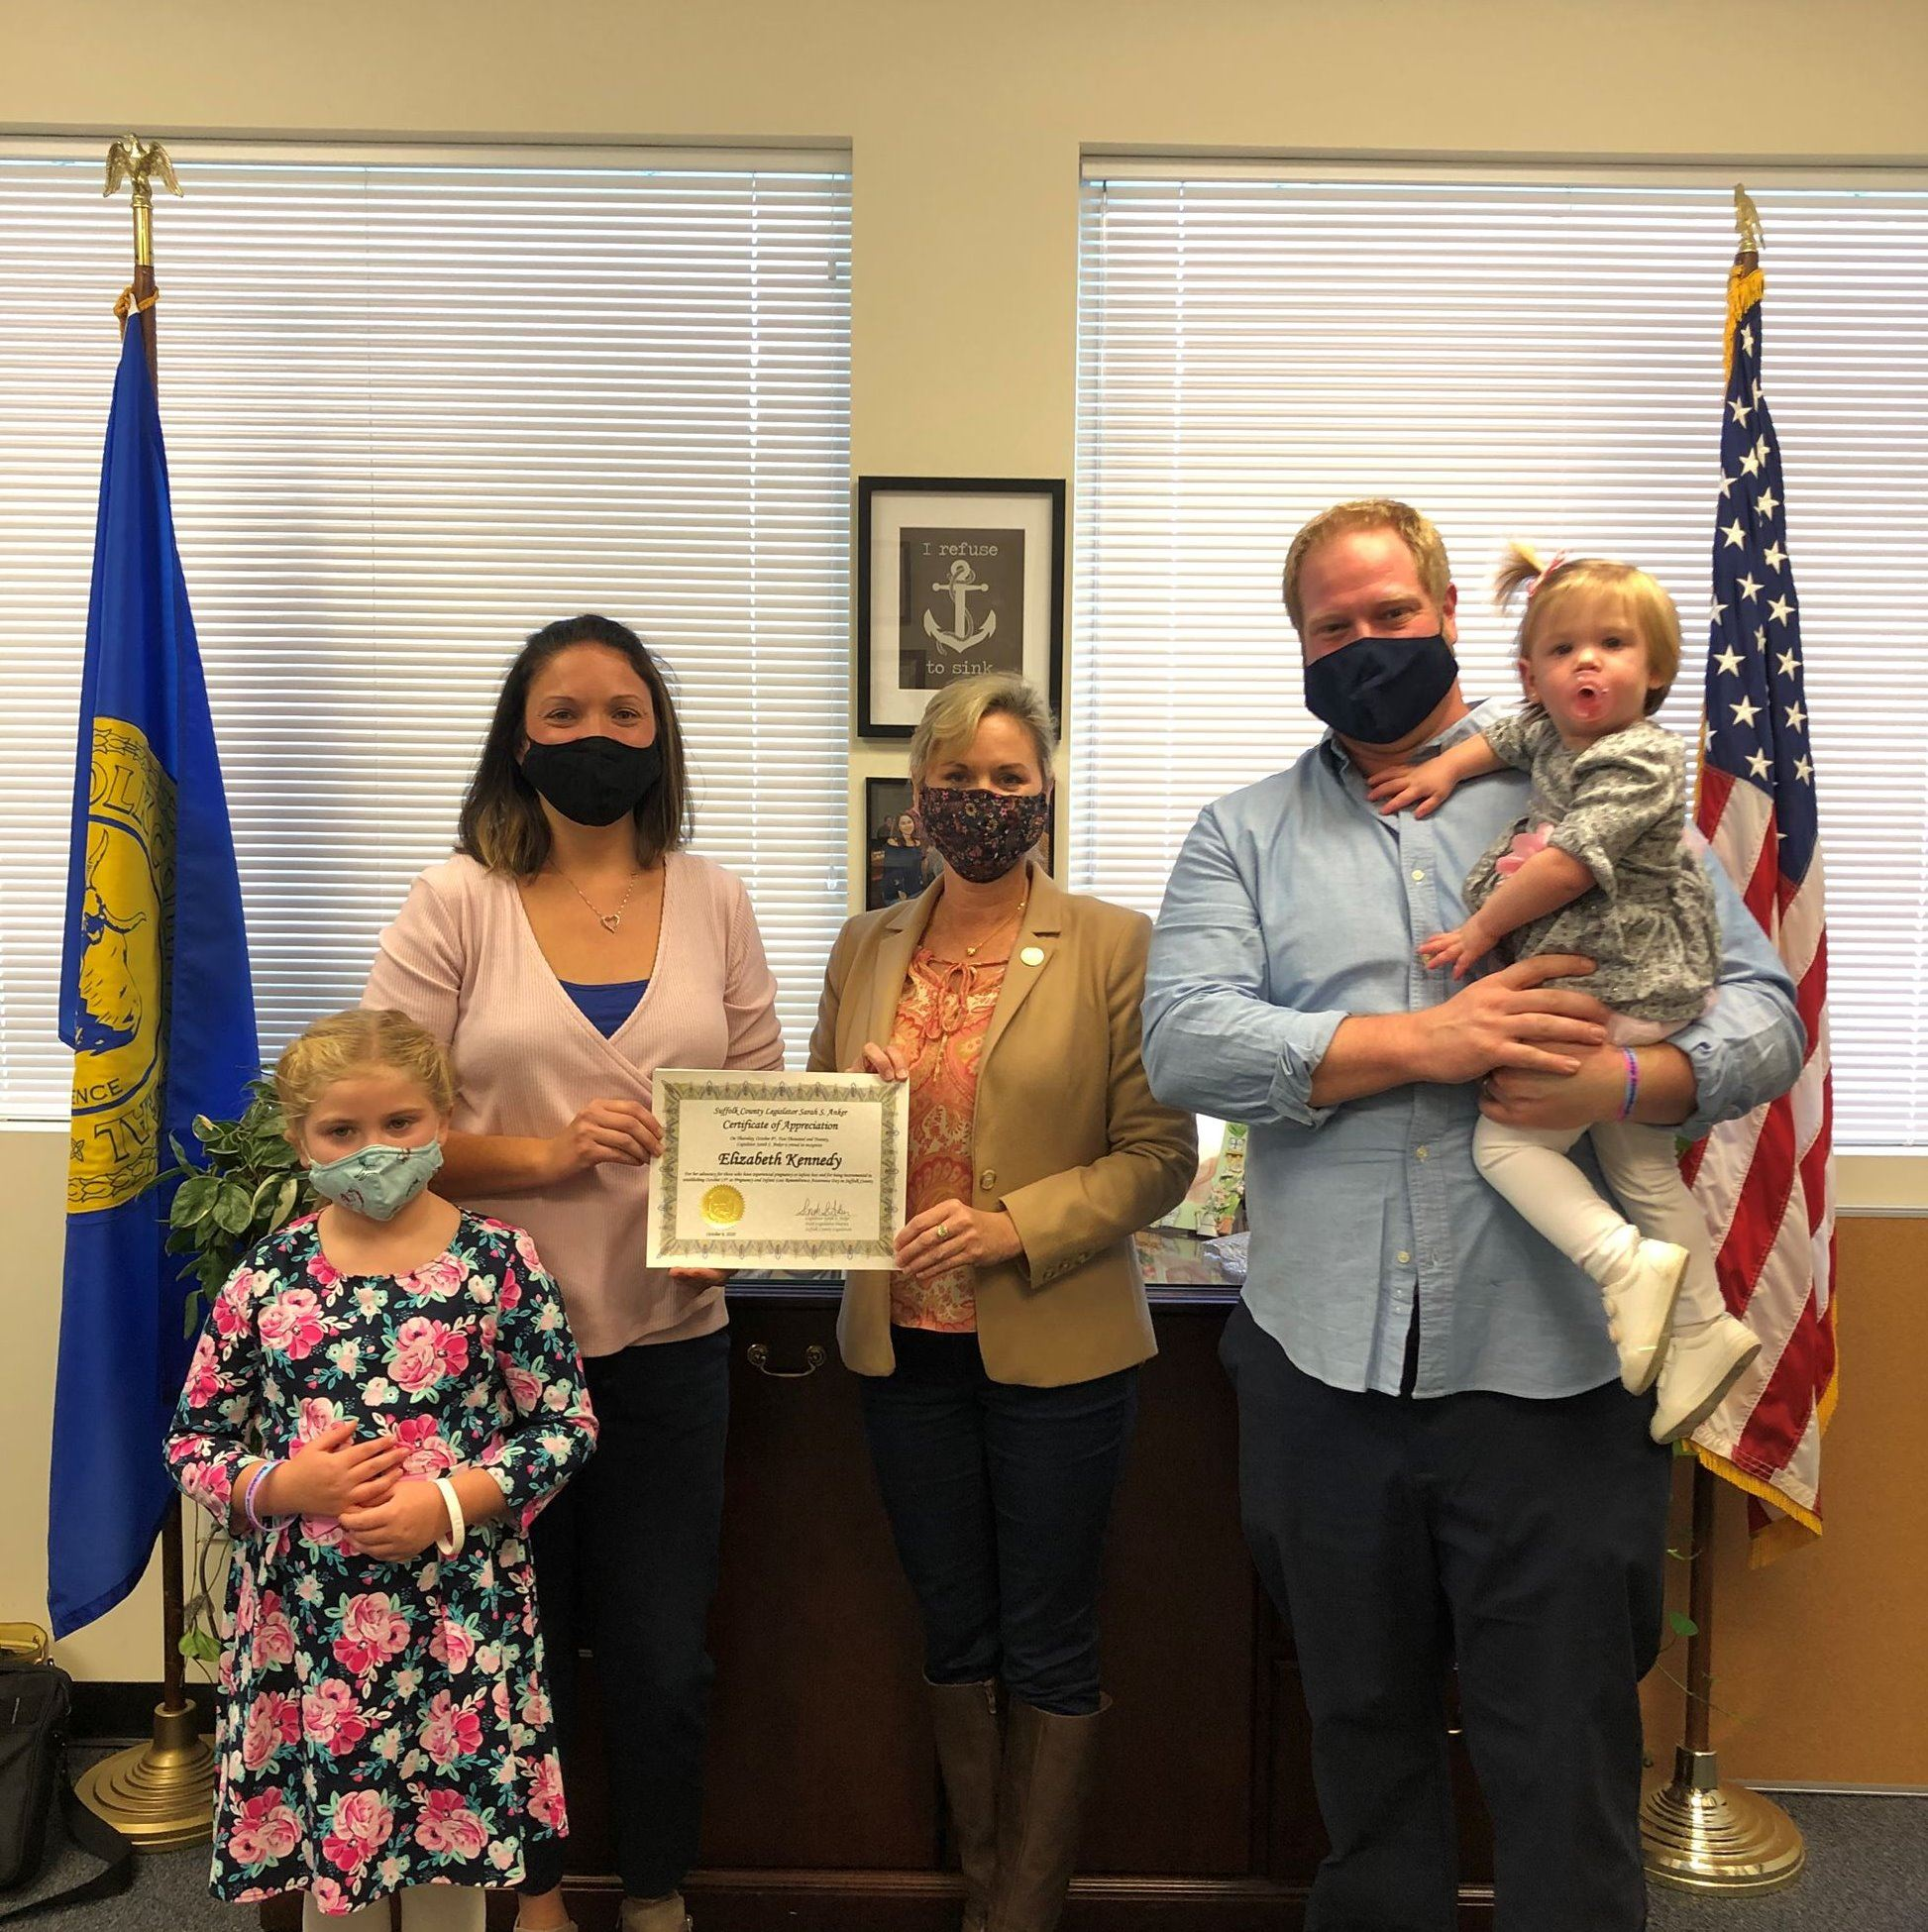 Elizabeth Kennedy and family, and Legislator Anker